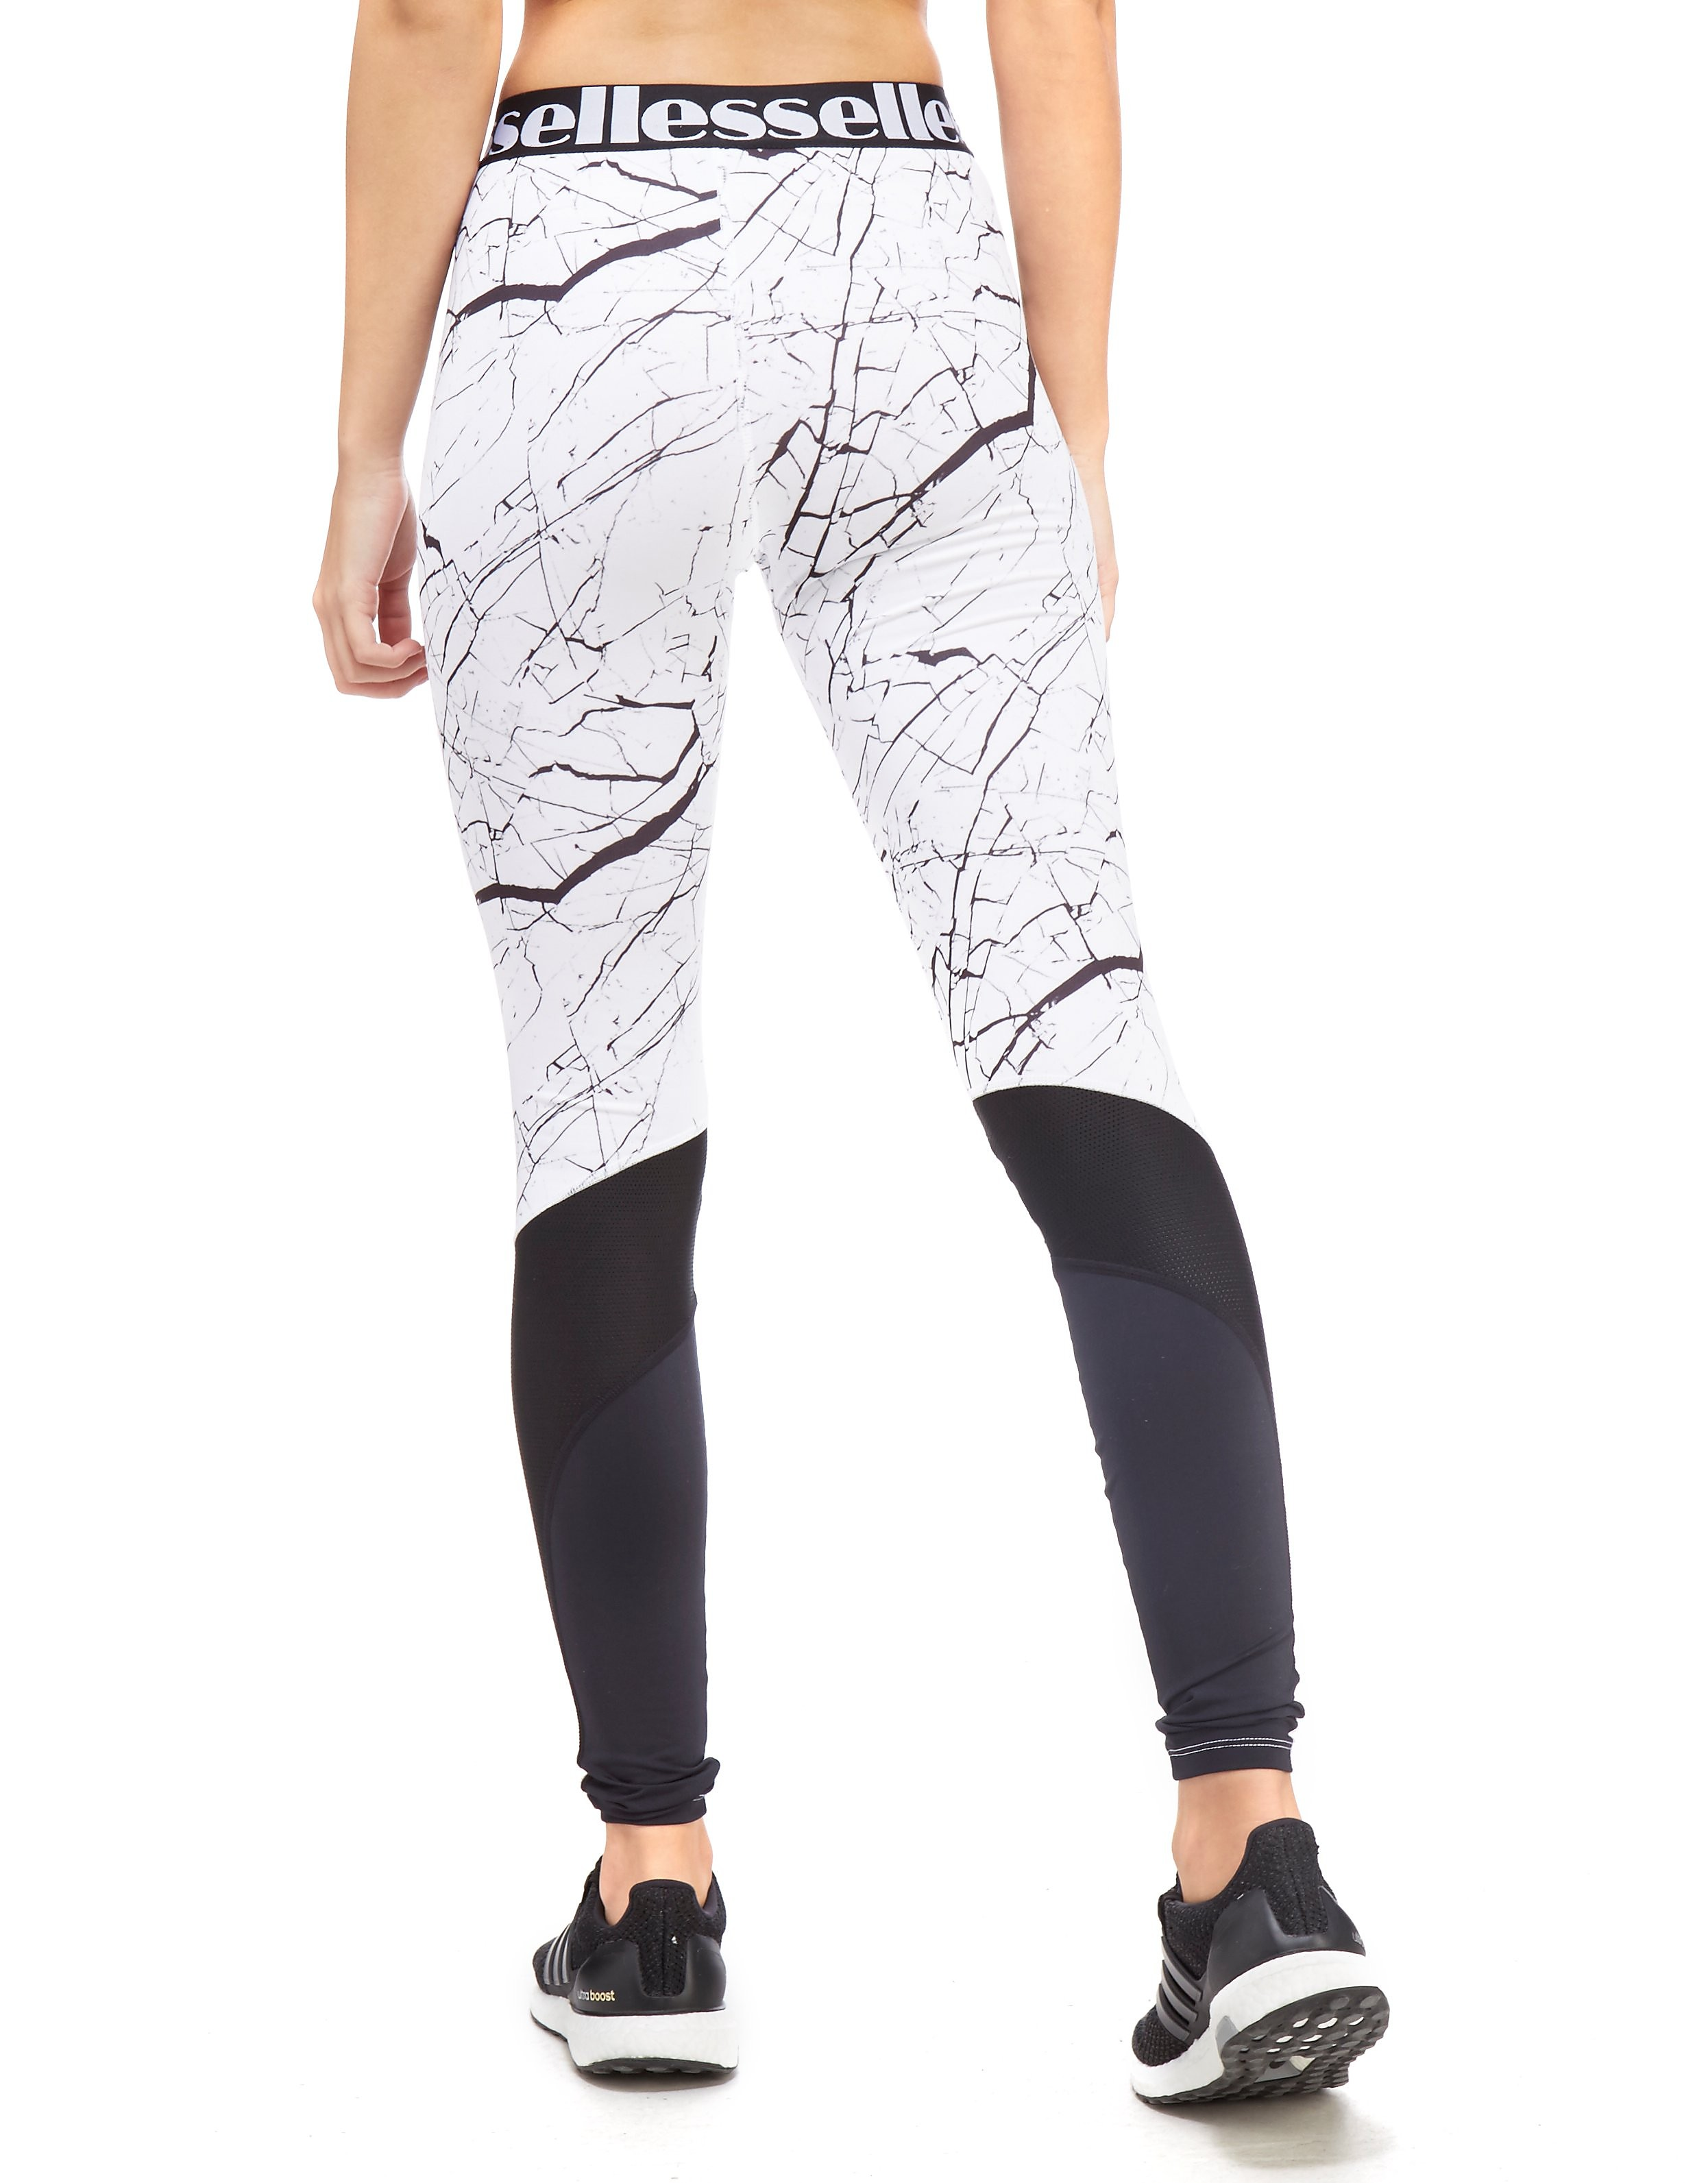 Ellesse All-Over Print Marble Tights